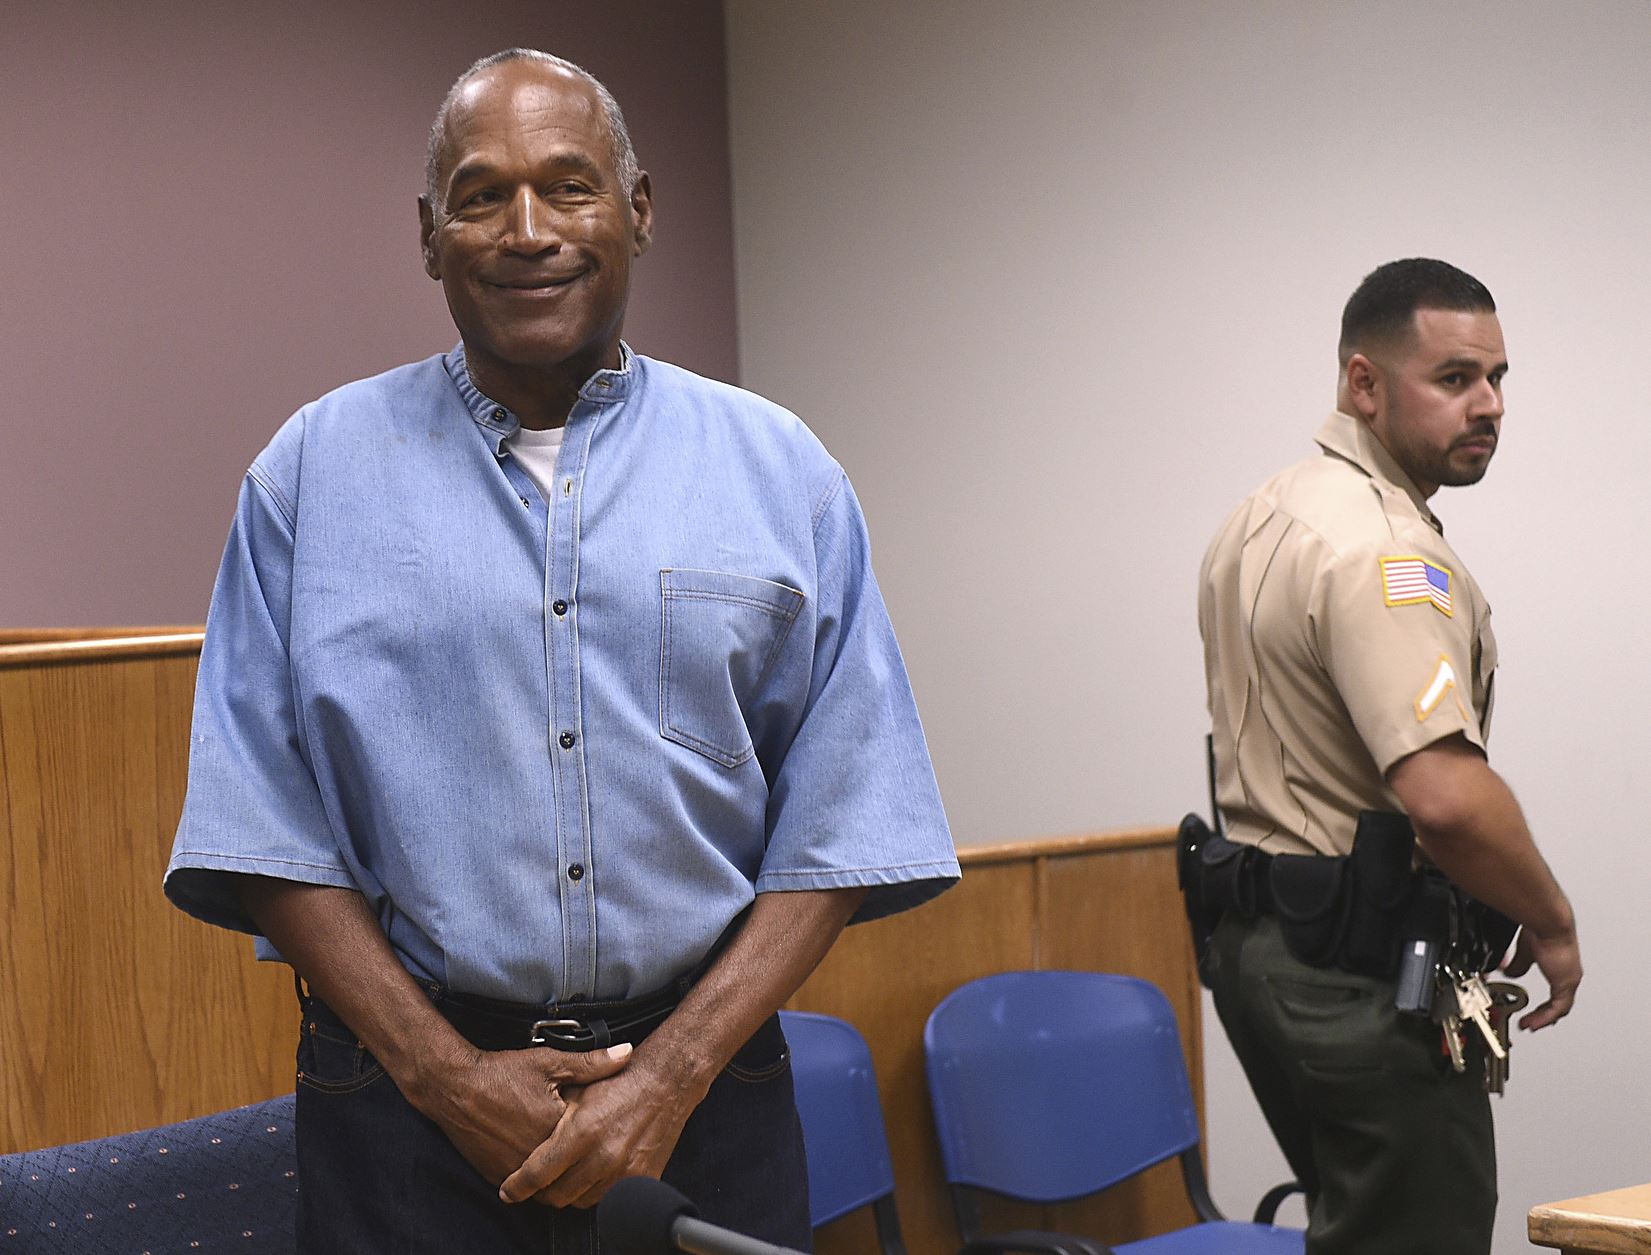 OJ Simpson's Life After Prison Isn't What It Appears